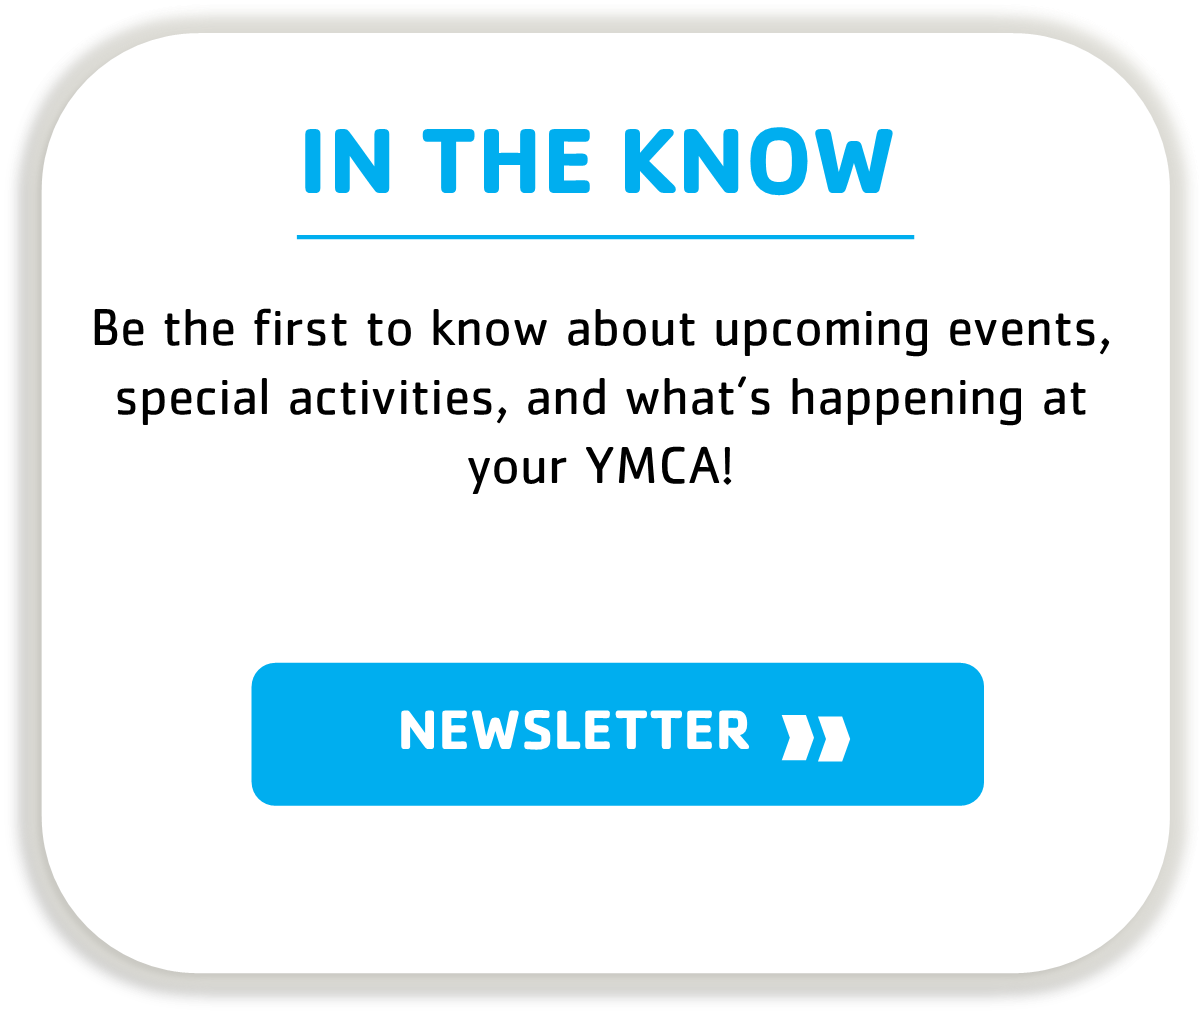 http://mtrymca.org/sites/mtrymca.org/assets/images/home/Home-Newsletter2021-03-23-0631.png